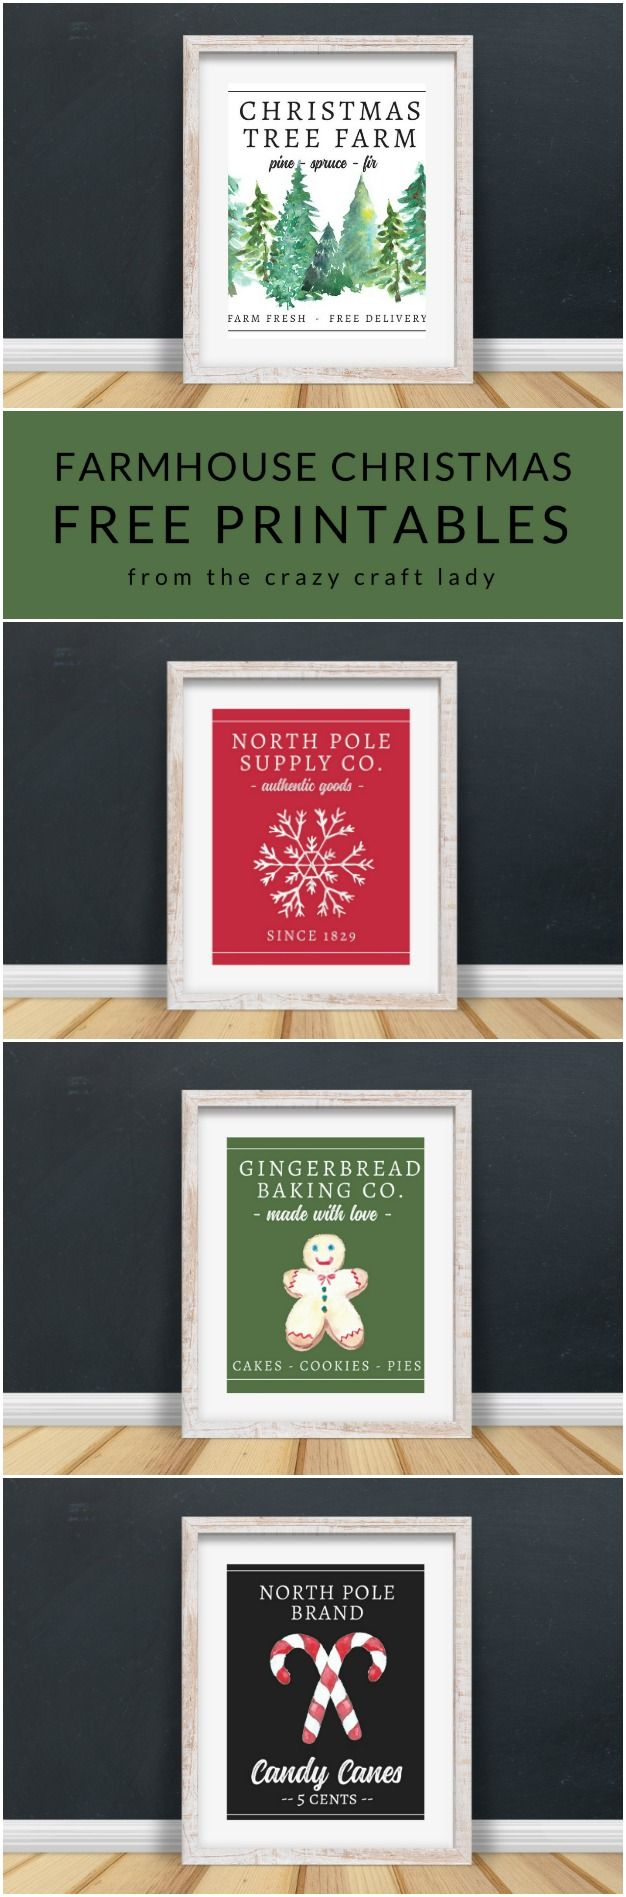 These FREE Farmhouse Christmas Art Printables are perfect for your holiday decor and gallery walls. 14 free classic Christmas printables. #freeprintable #FarmhouseChristmas